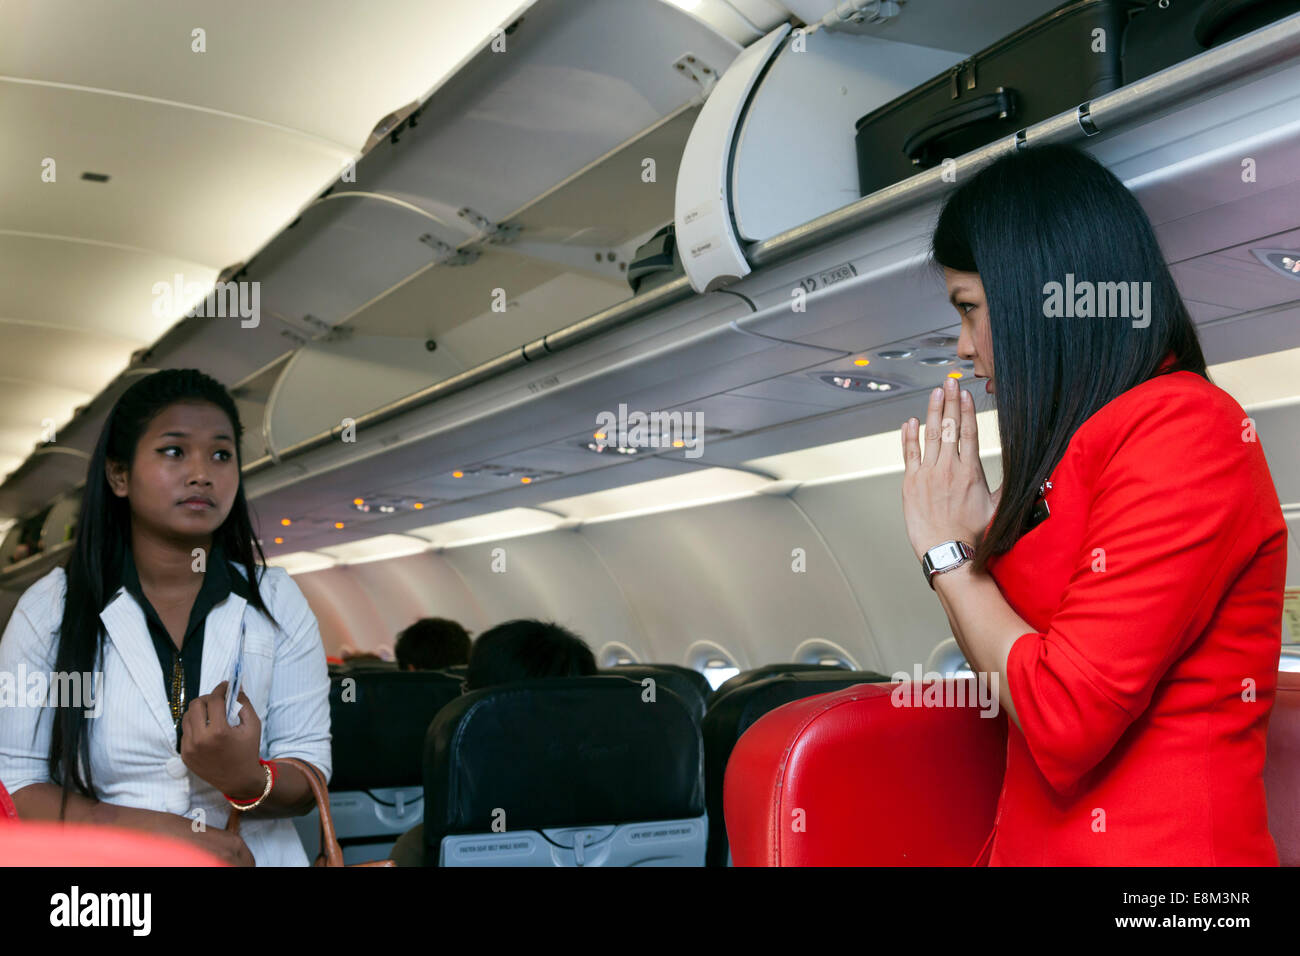 Air Asia flight attendant and boarding passenger - Stock Image